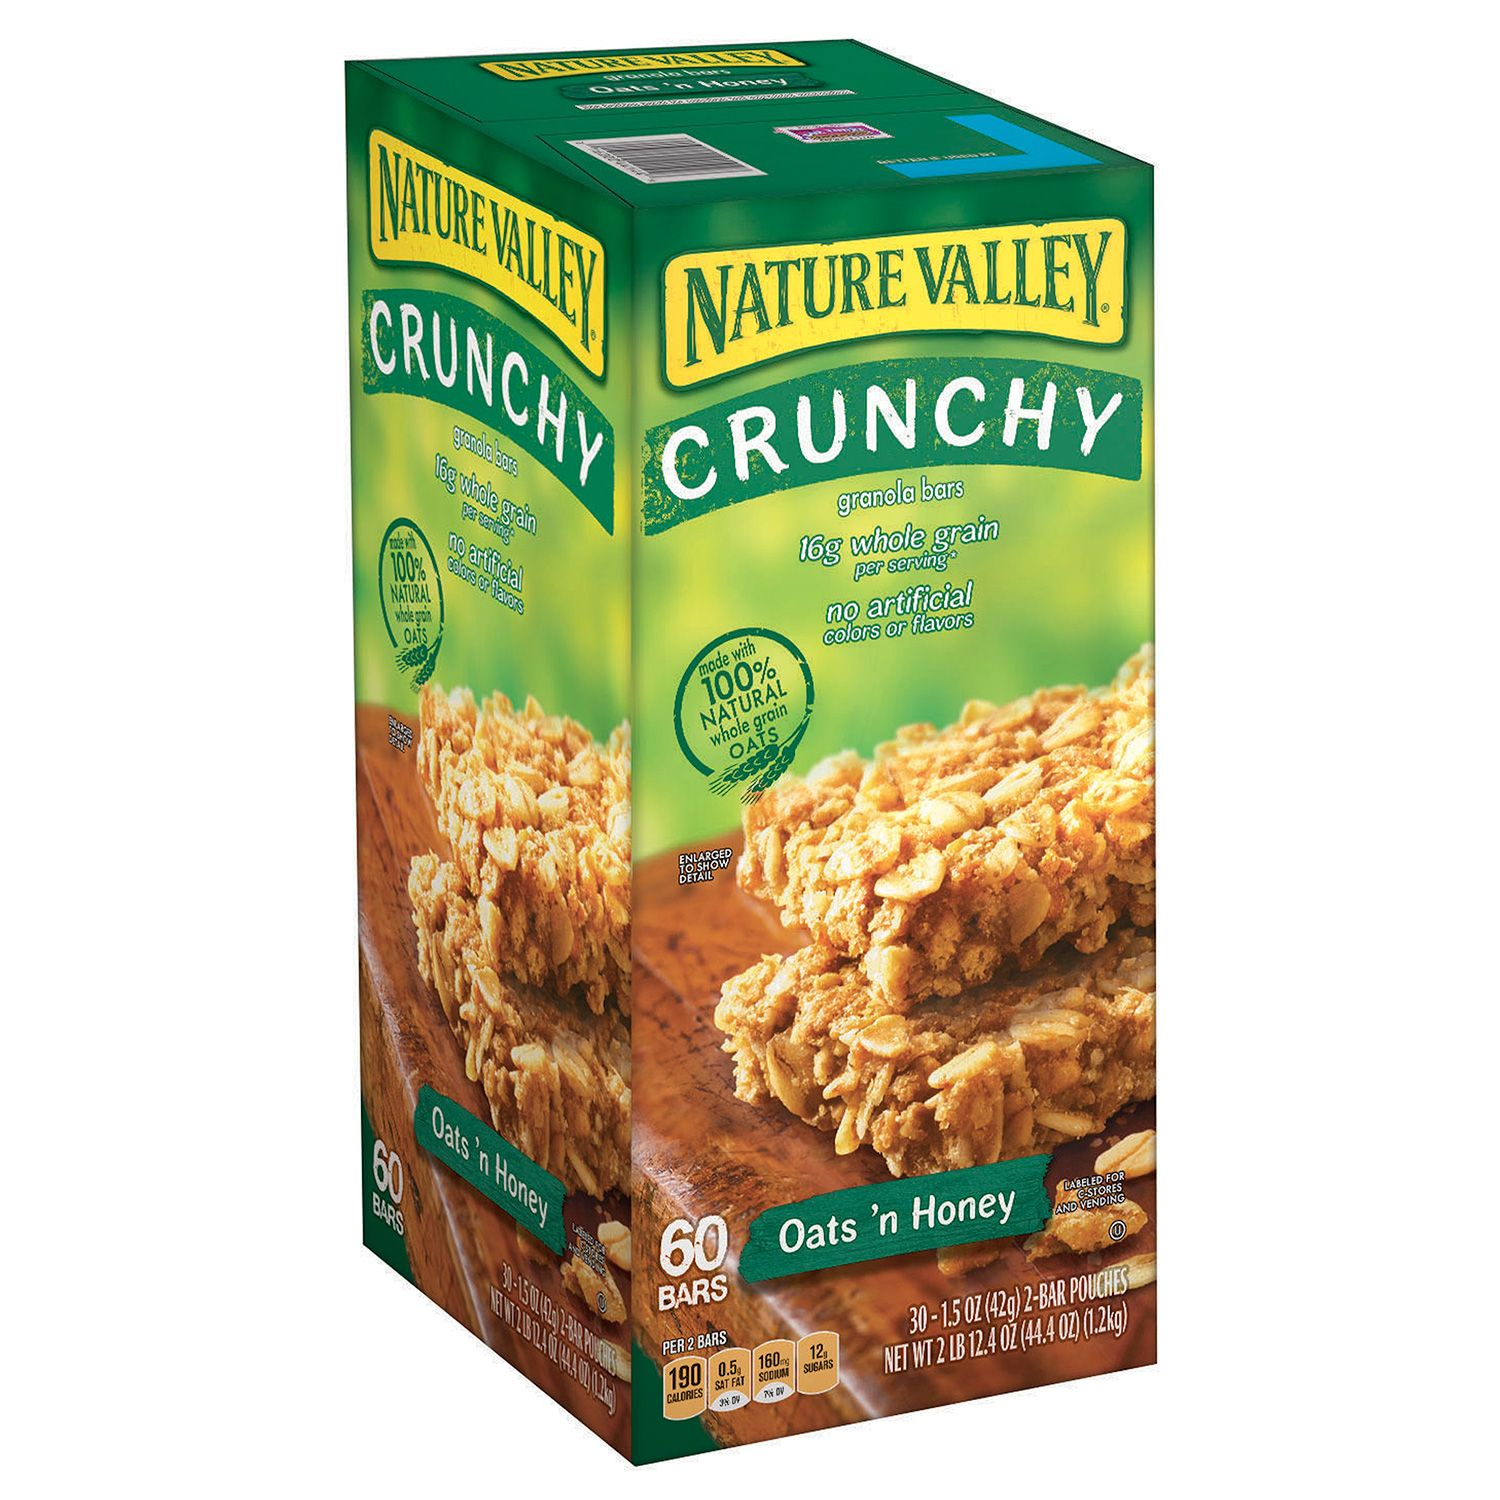 Details about Nature Valley Oats 'N Honey Crunchy Granola Bars 60ct